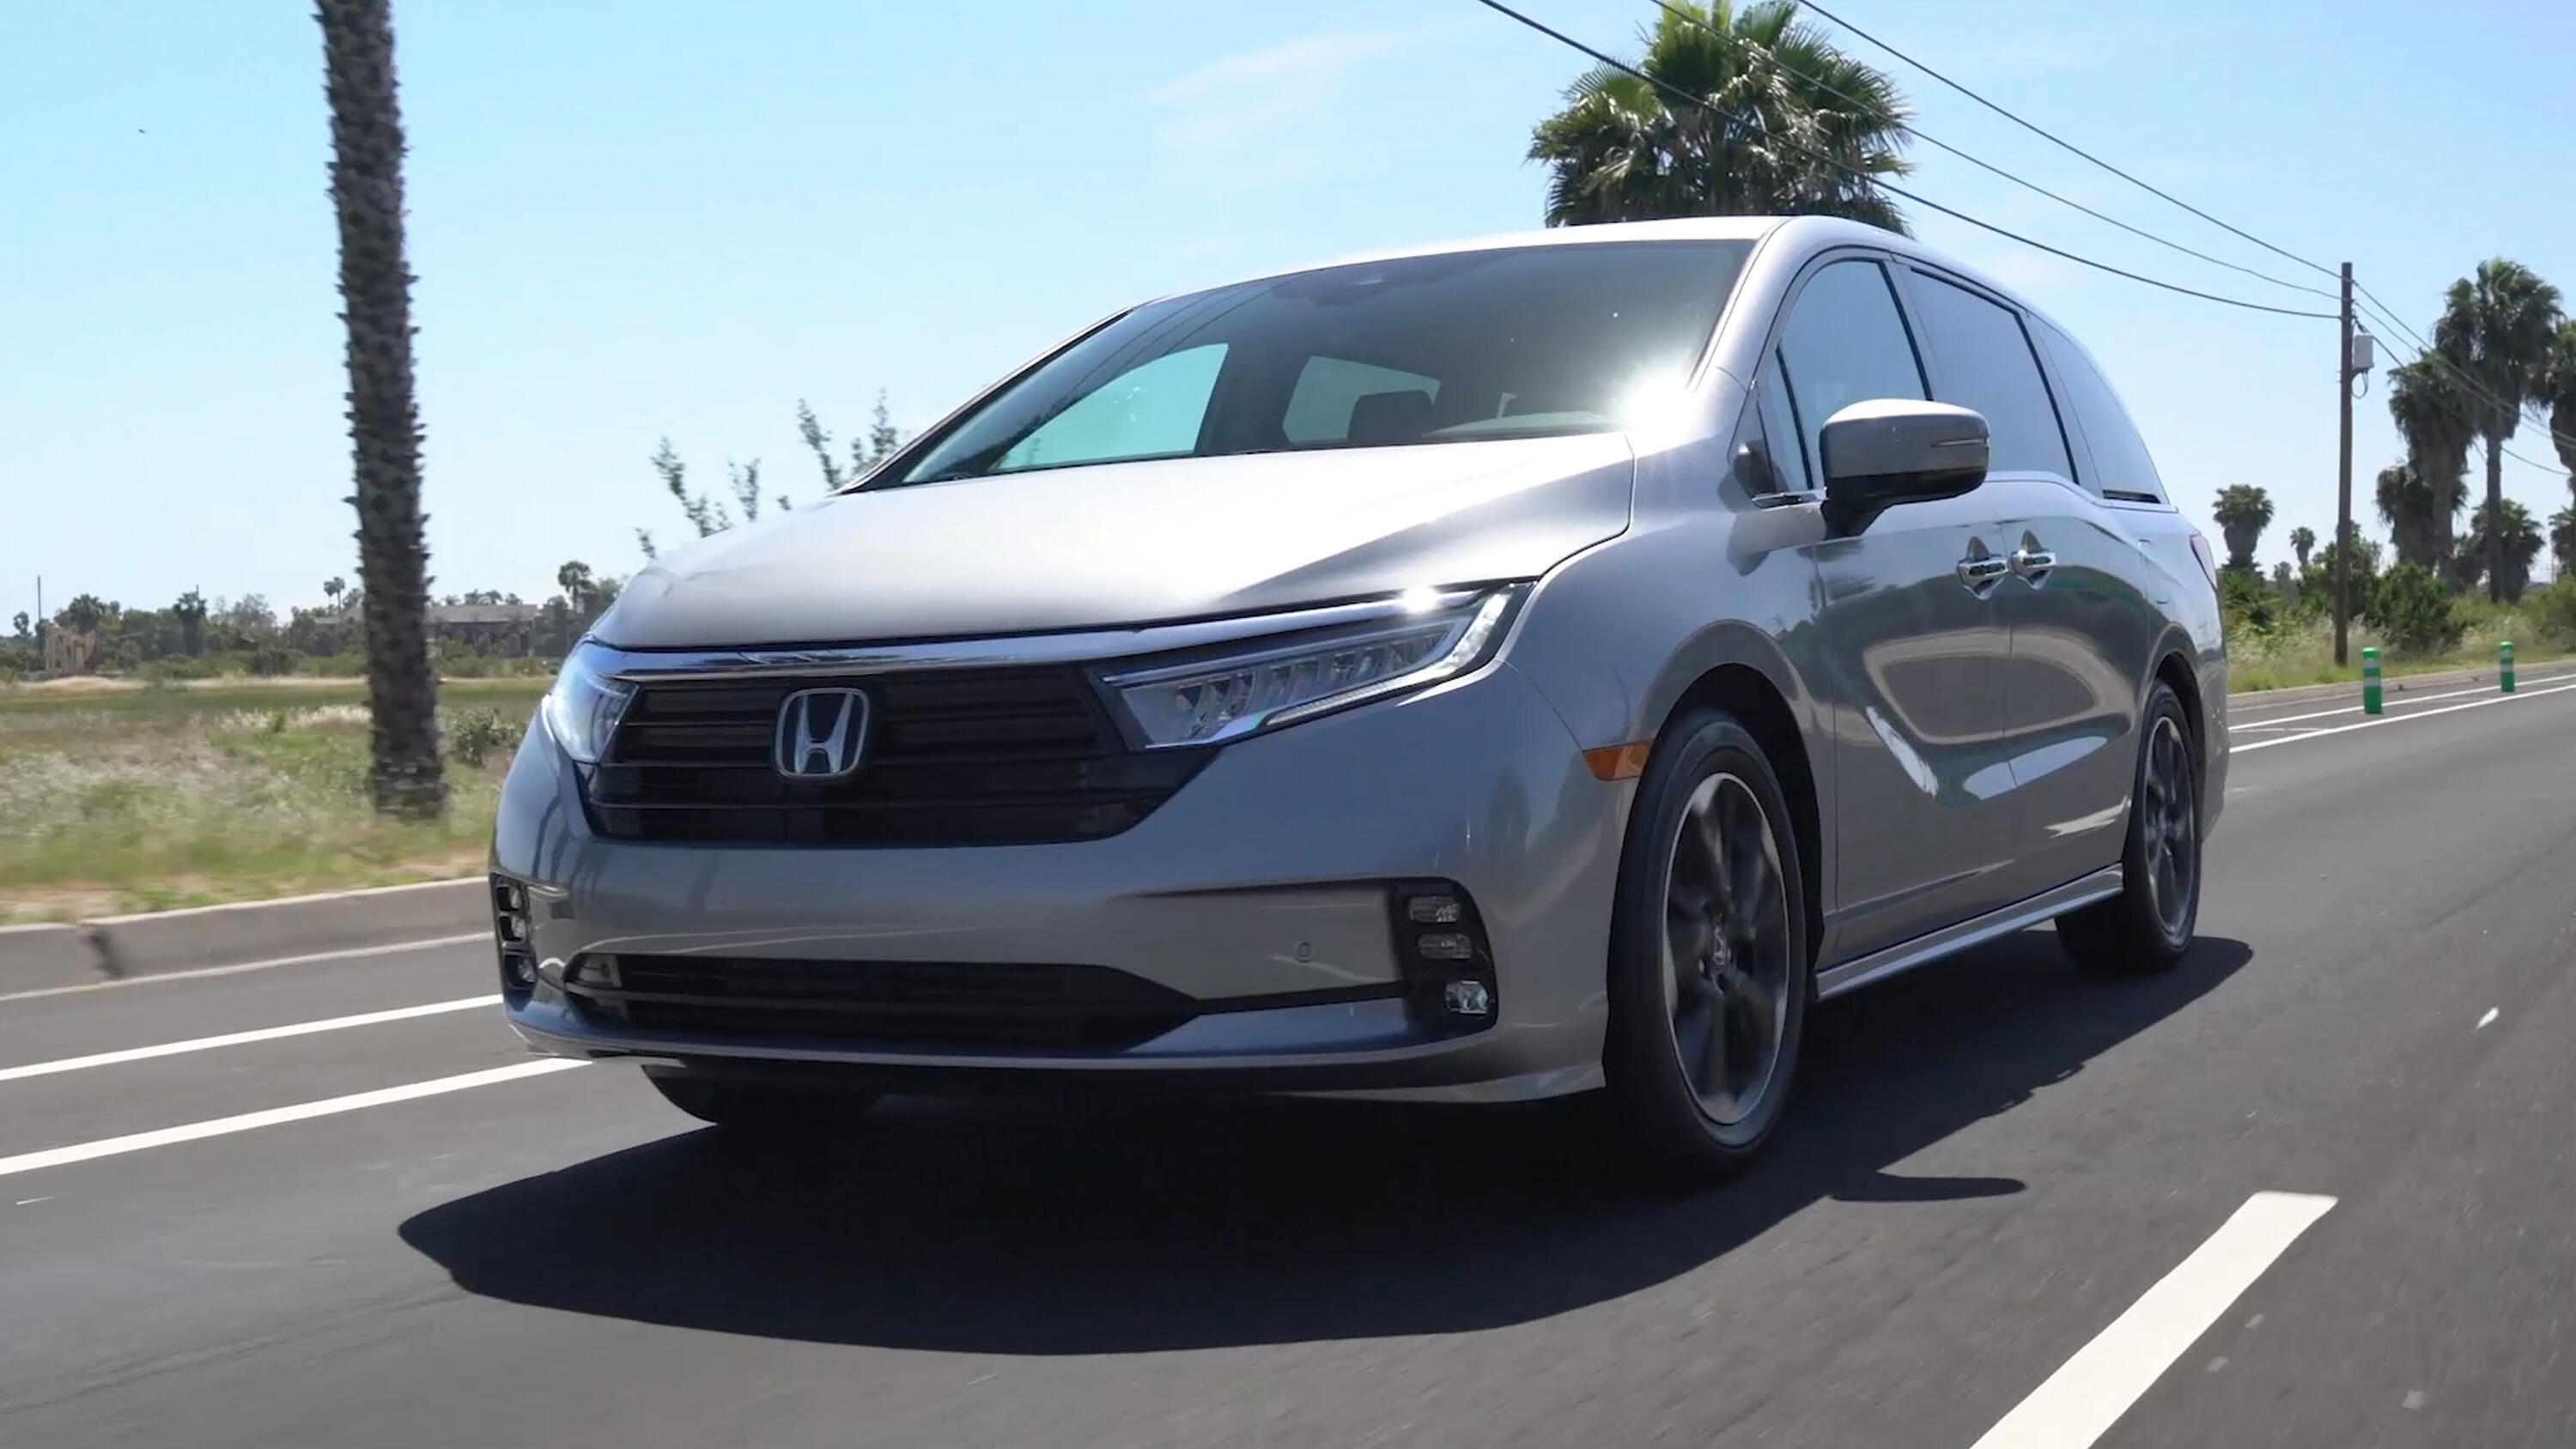 Video: 2021 Honda Odyssey first drive: Maximum minivan